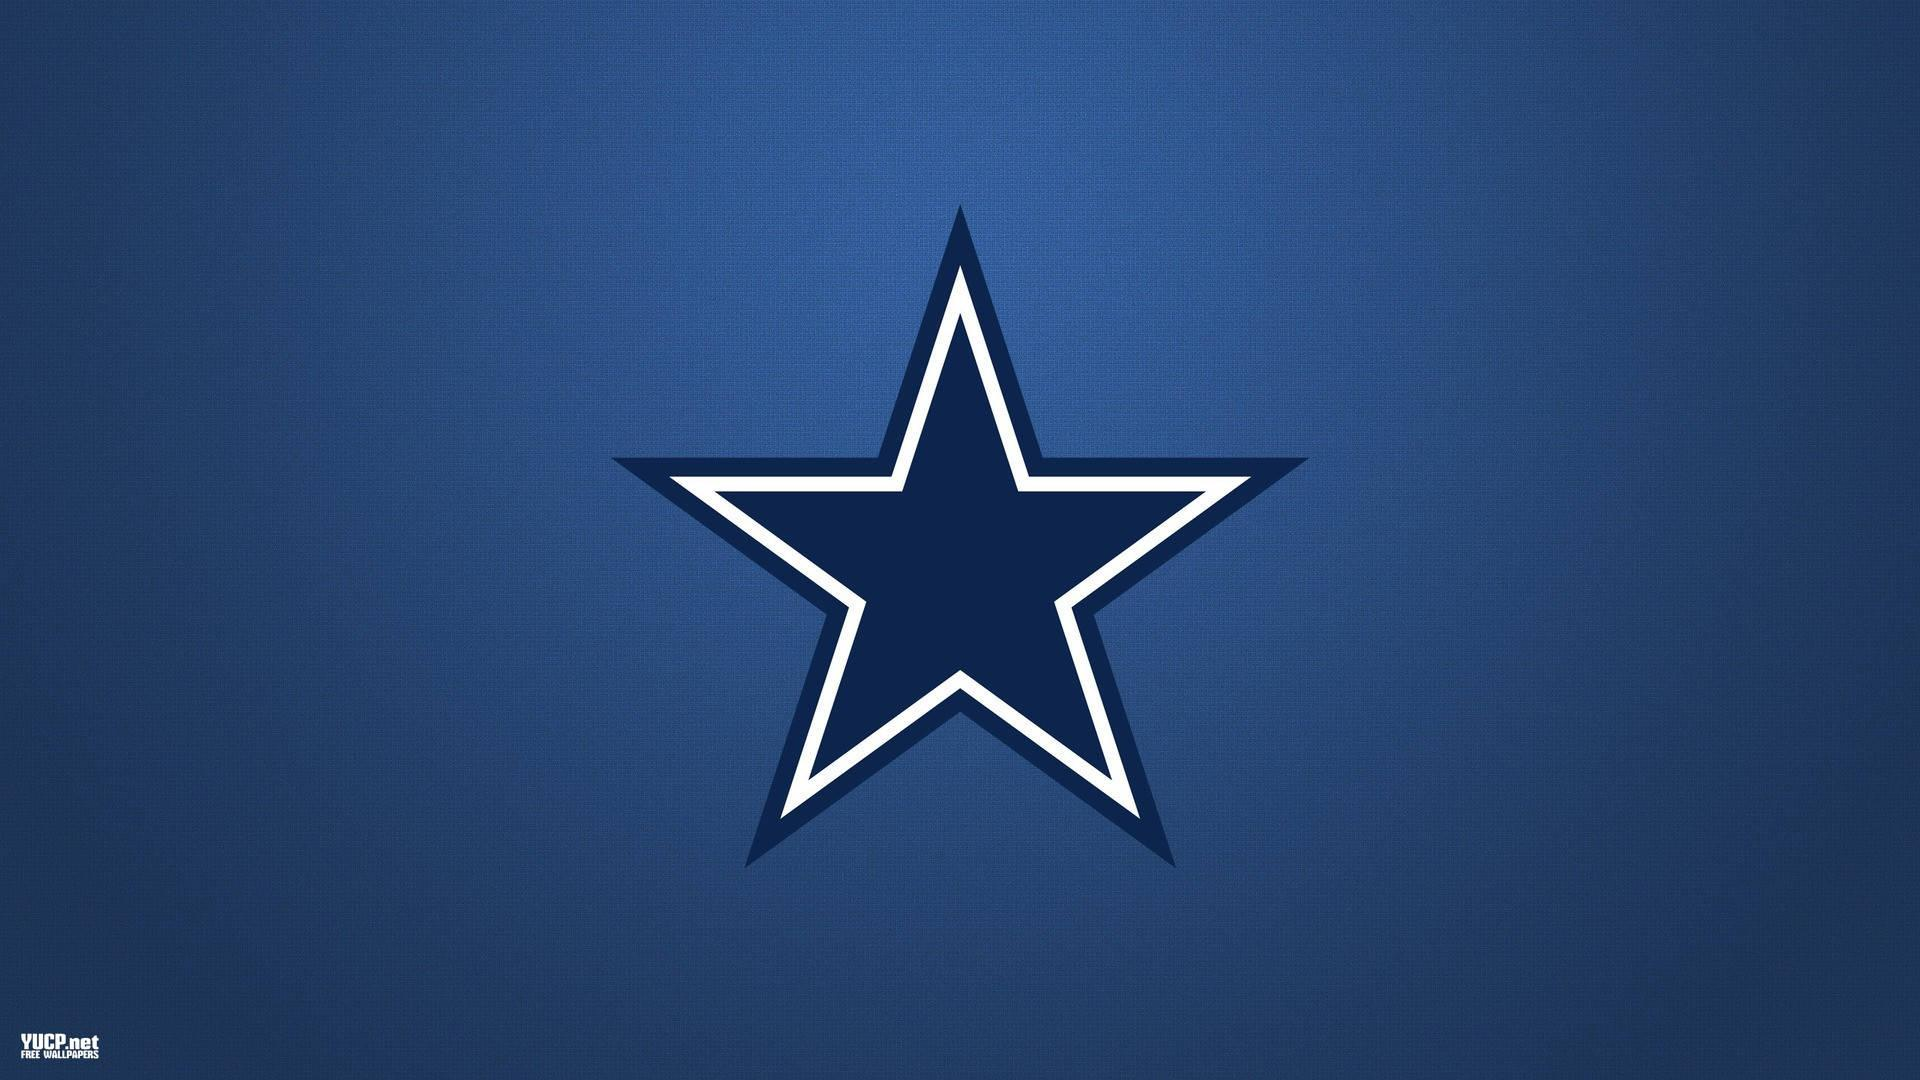 NFL Team Dallas Cowboys Wallpapers